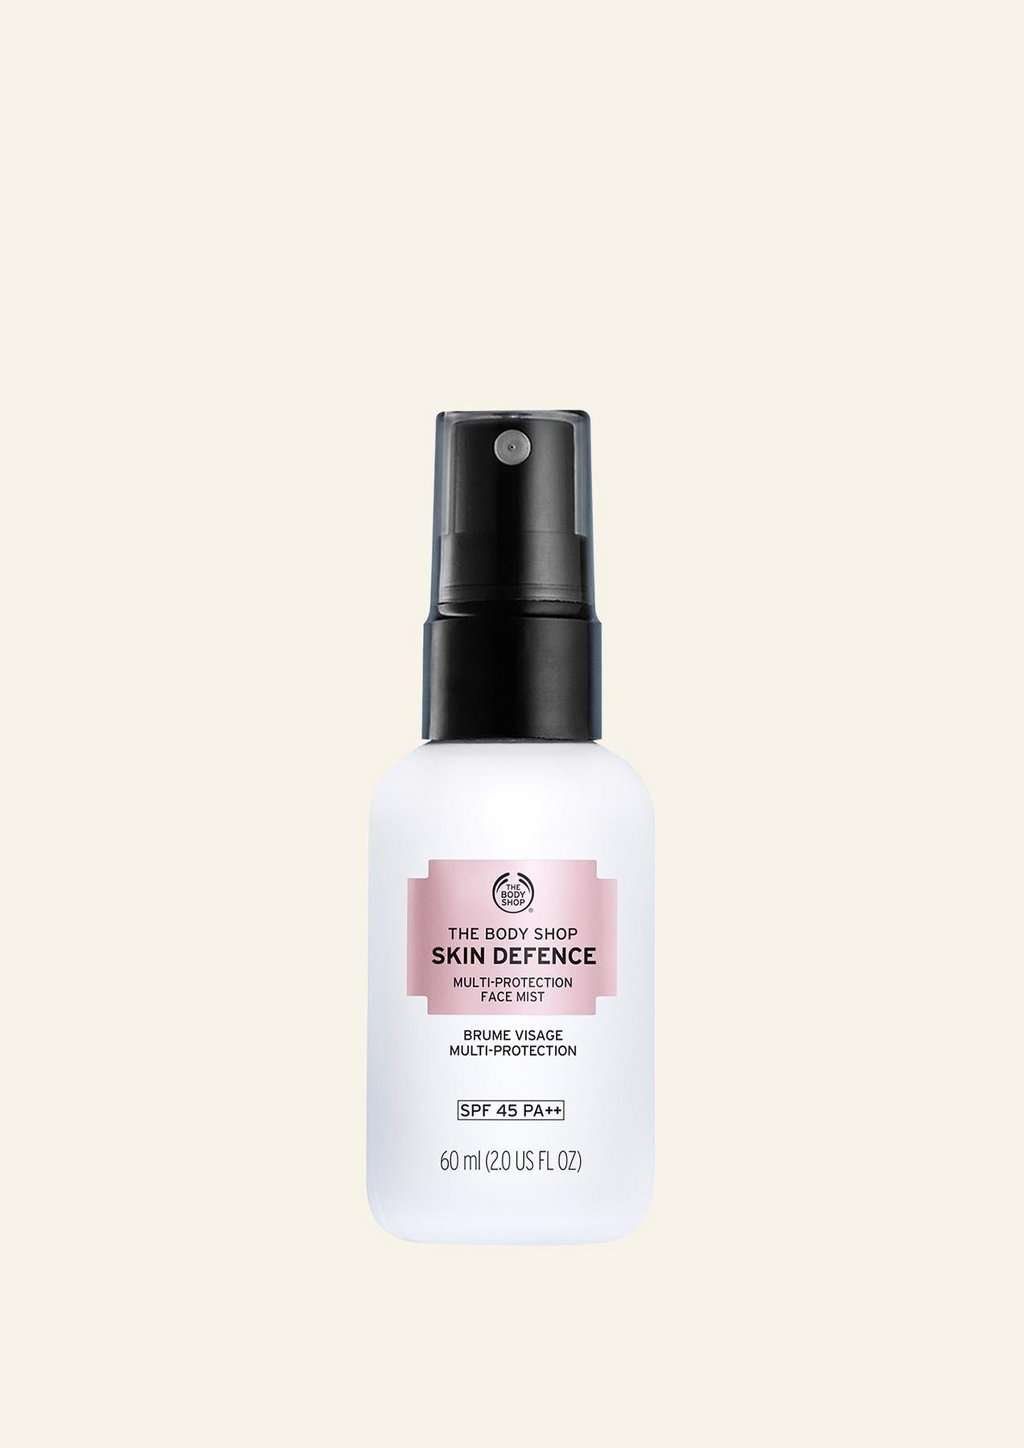 The Body Shop Skin Defence mist